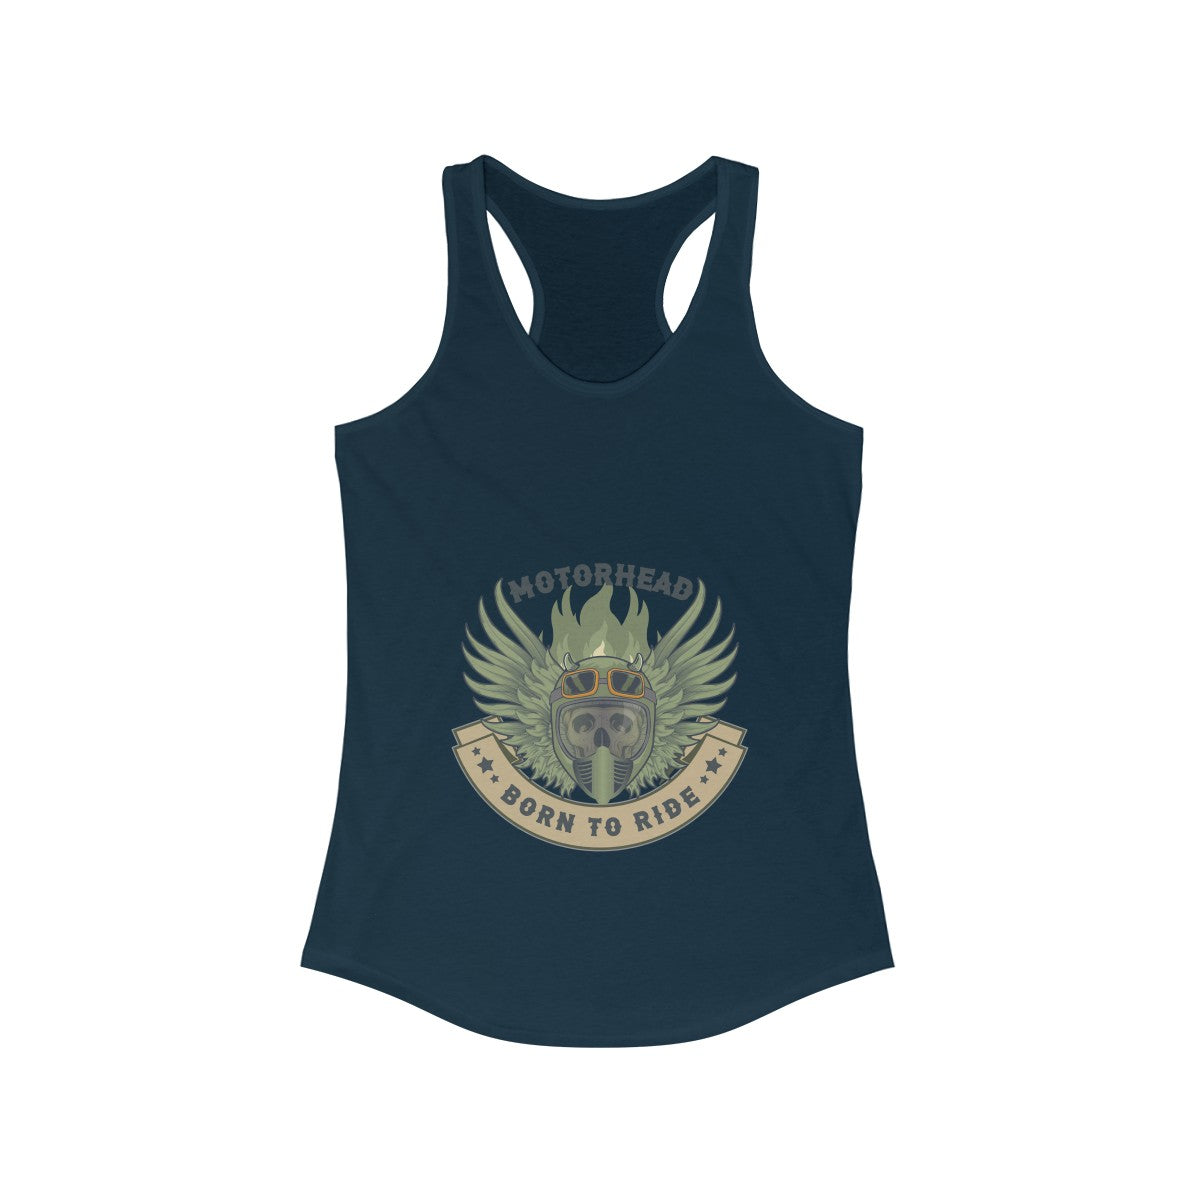 Born to ride Women's Ideal Racerback Tank